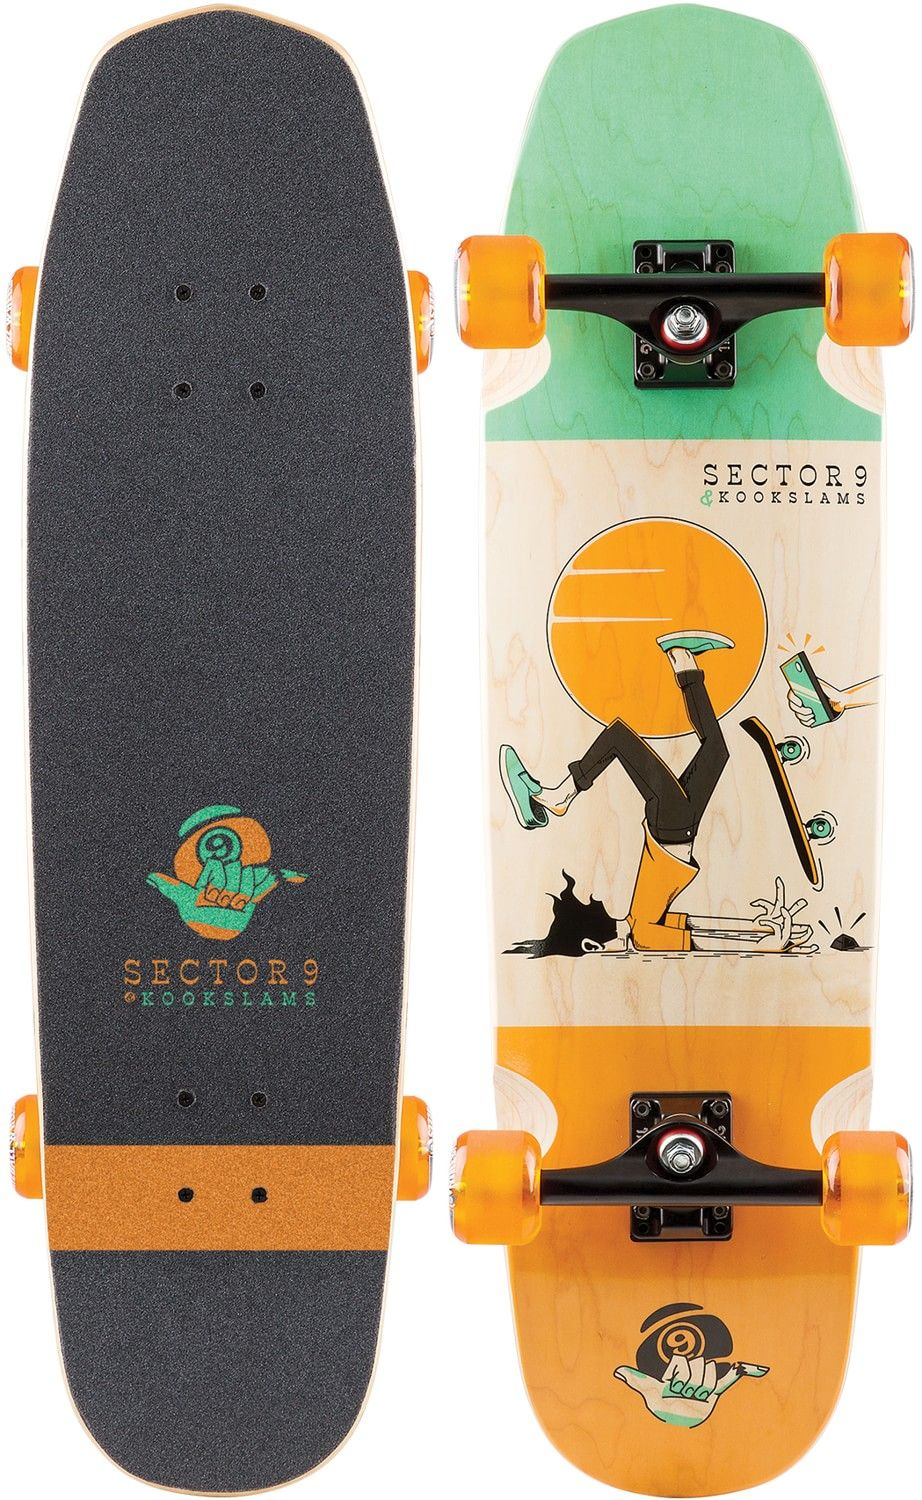 Sector 9 Kookslams X Sector 9 Nosegrind 33 Complete Skateboard In Stock Now At Tactics Boardshop Fast Free S Cool Skateboards Skateboard Painted Skateboard